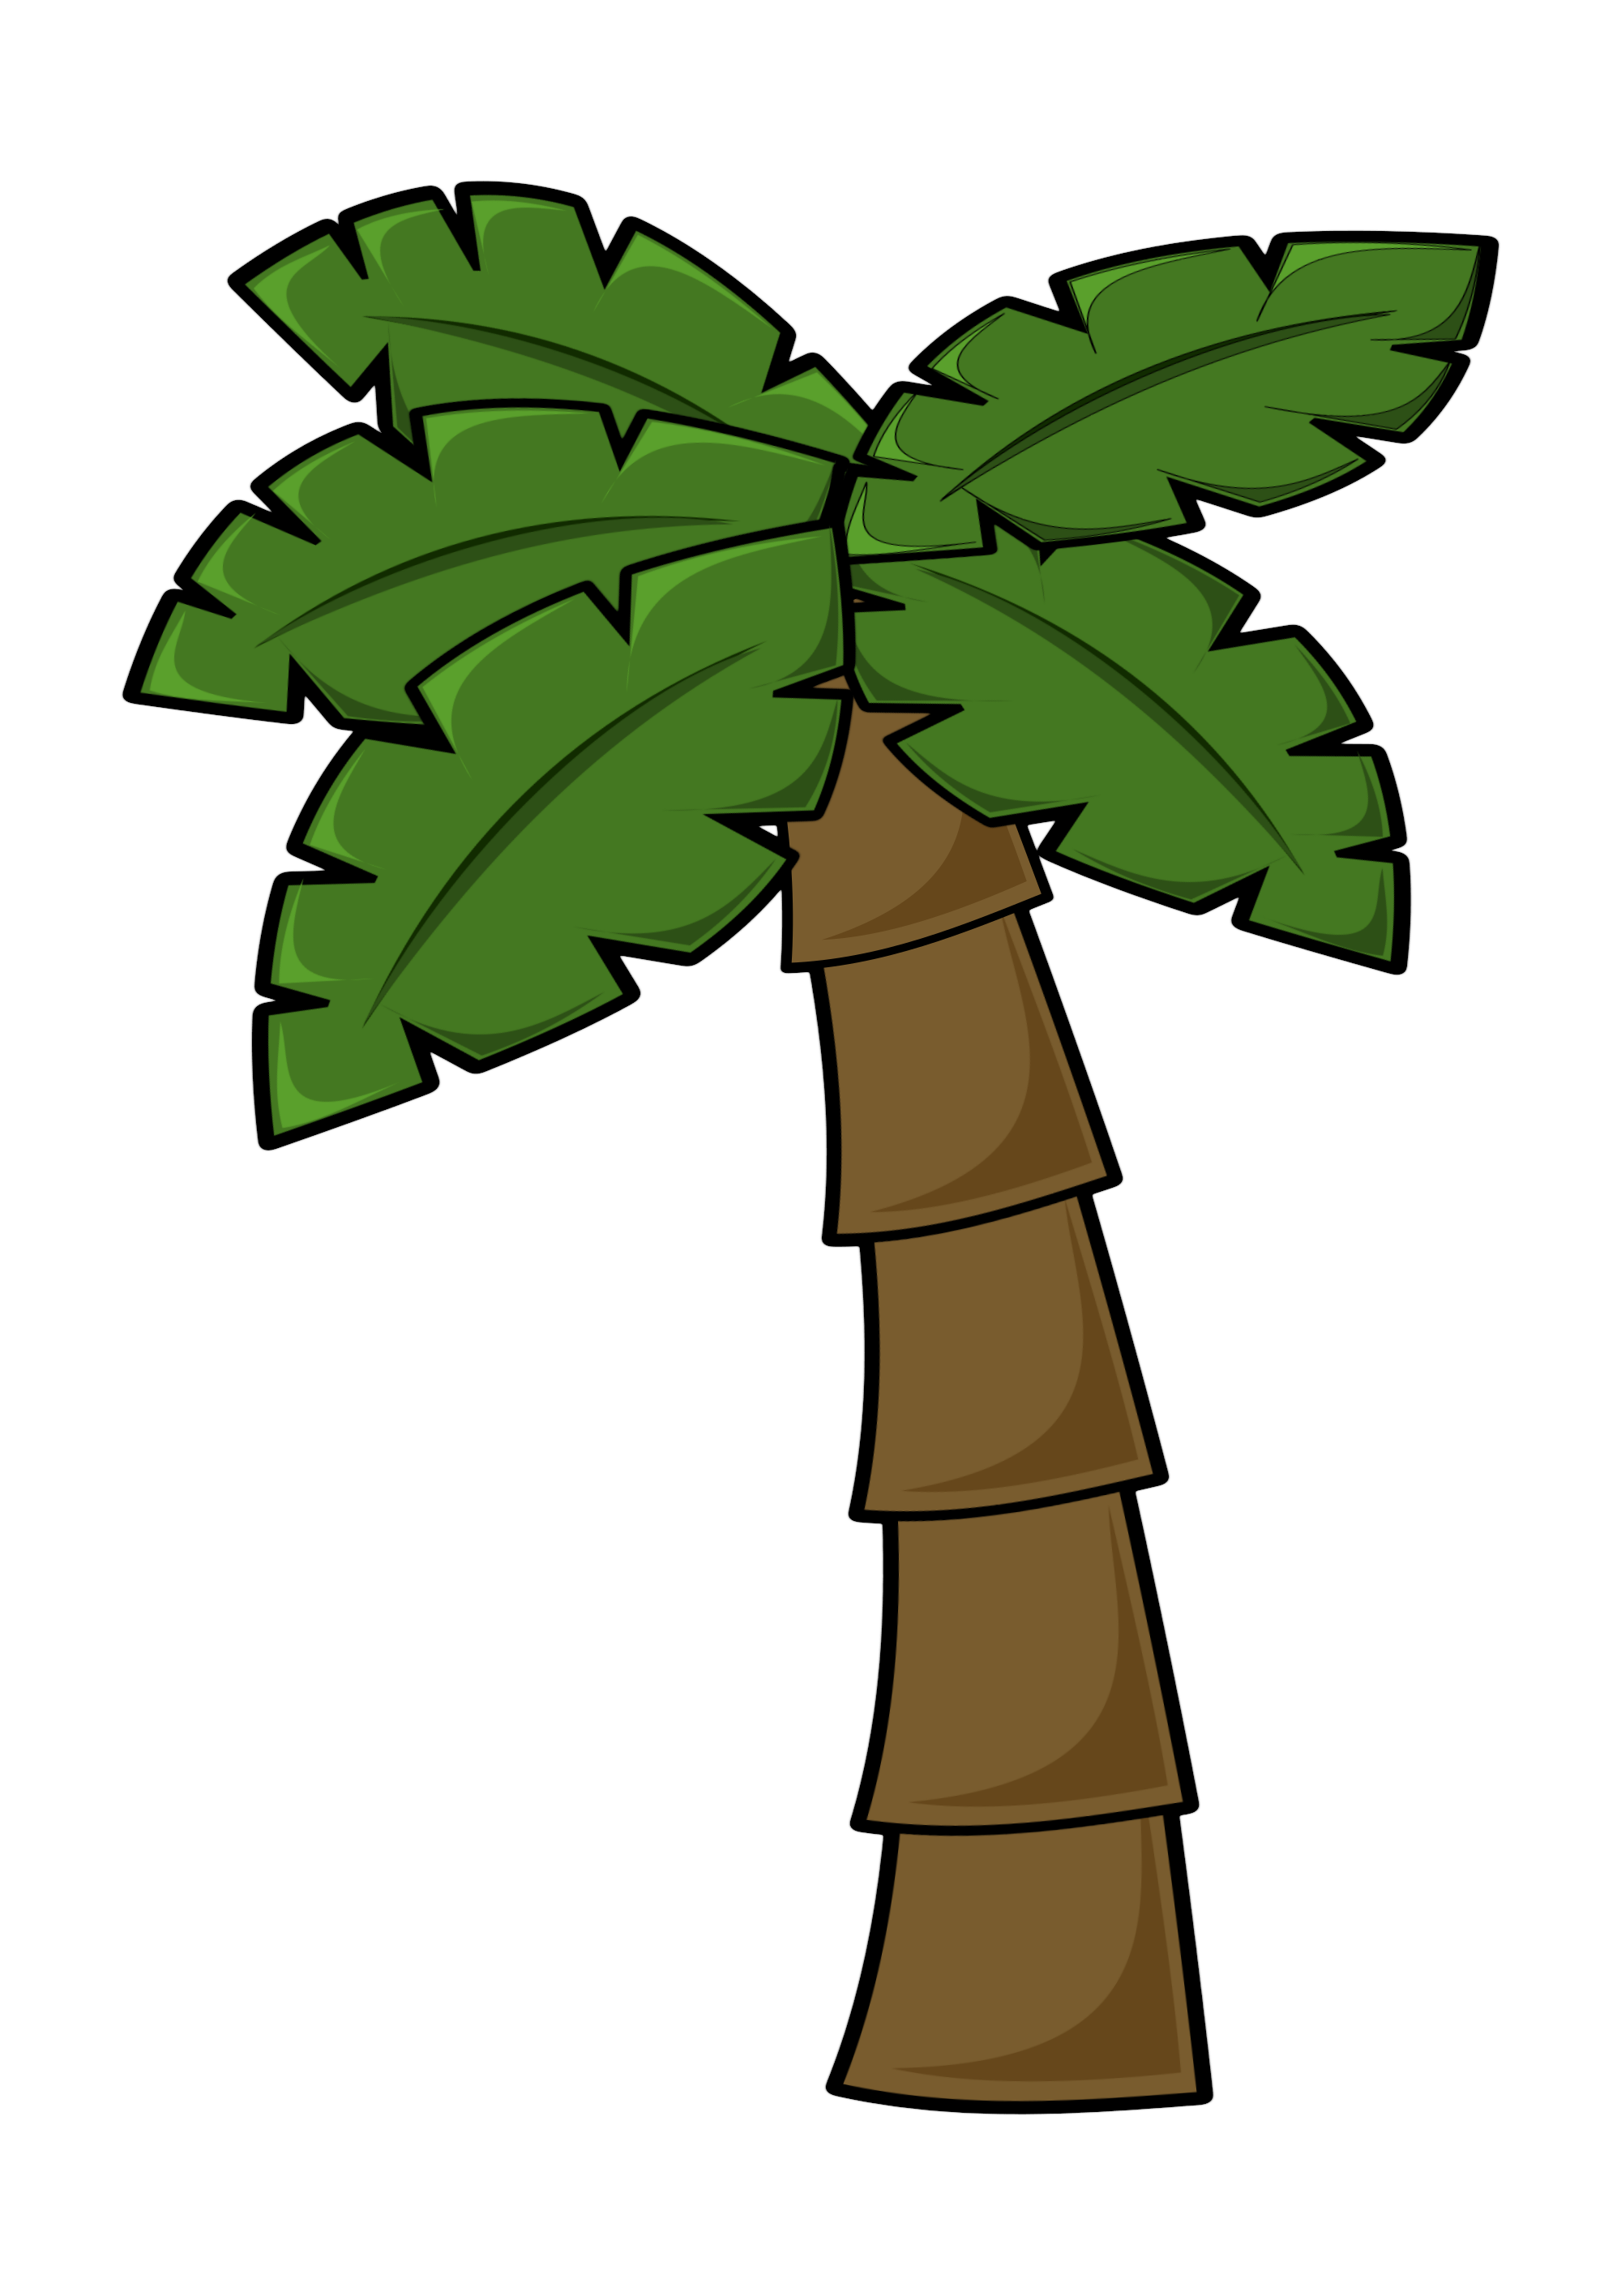 Free hawaiian thanksgiving clipart picture royalty free stock Free Simple Cartoon Palm Tree Clipart Clipart PNG and Vector Image ... picture royalty free stock